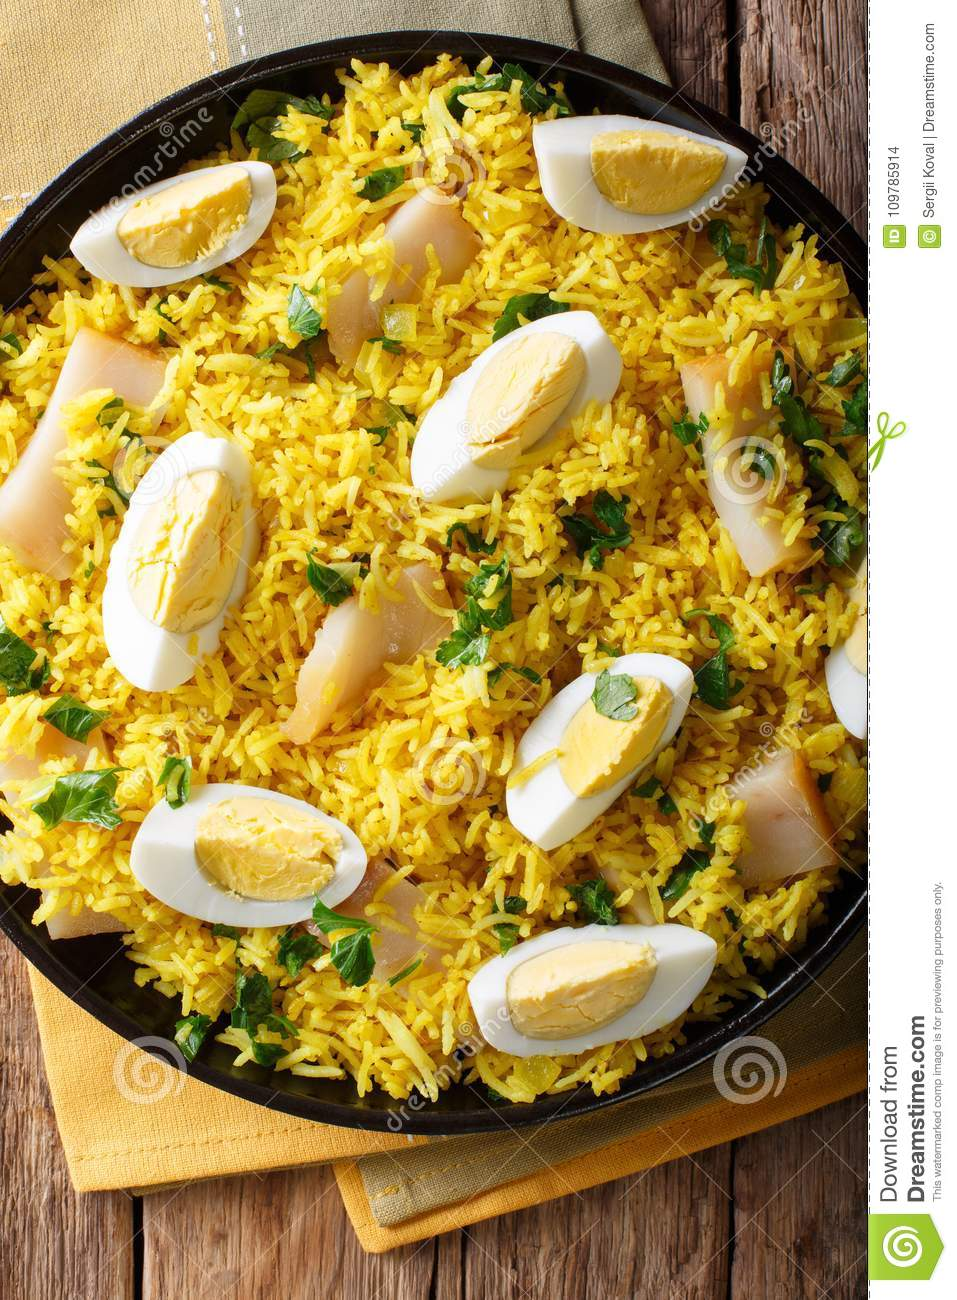 Kedgeree With Smoked Fish, Eggs And Spices Close-up